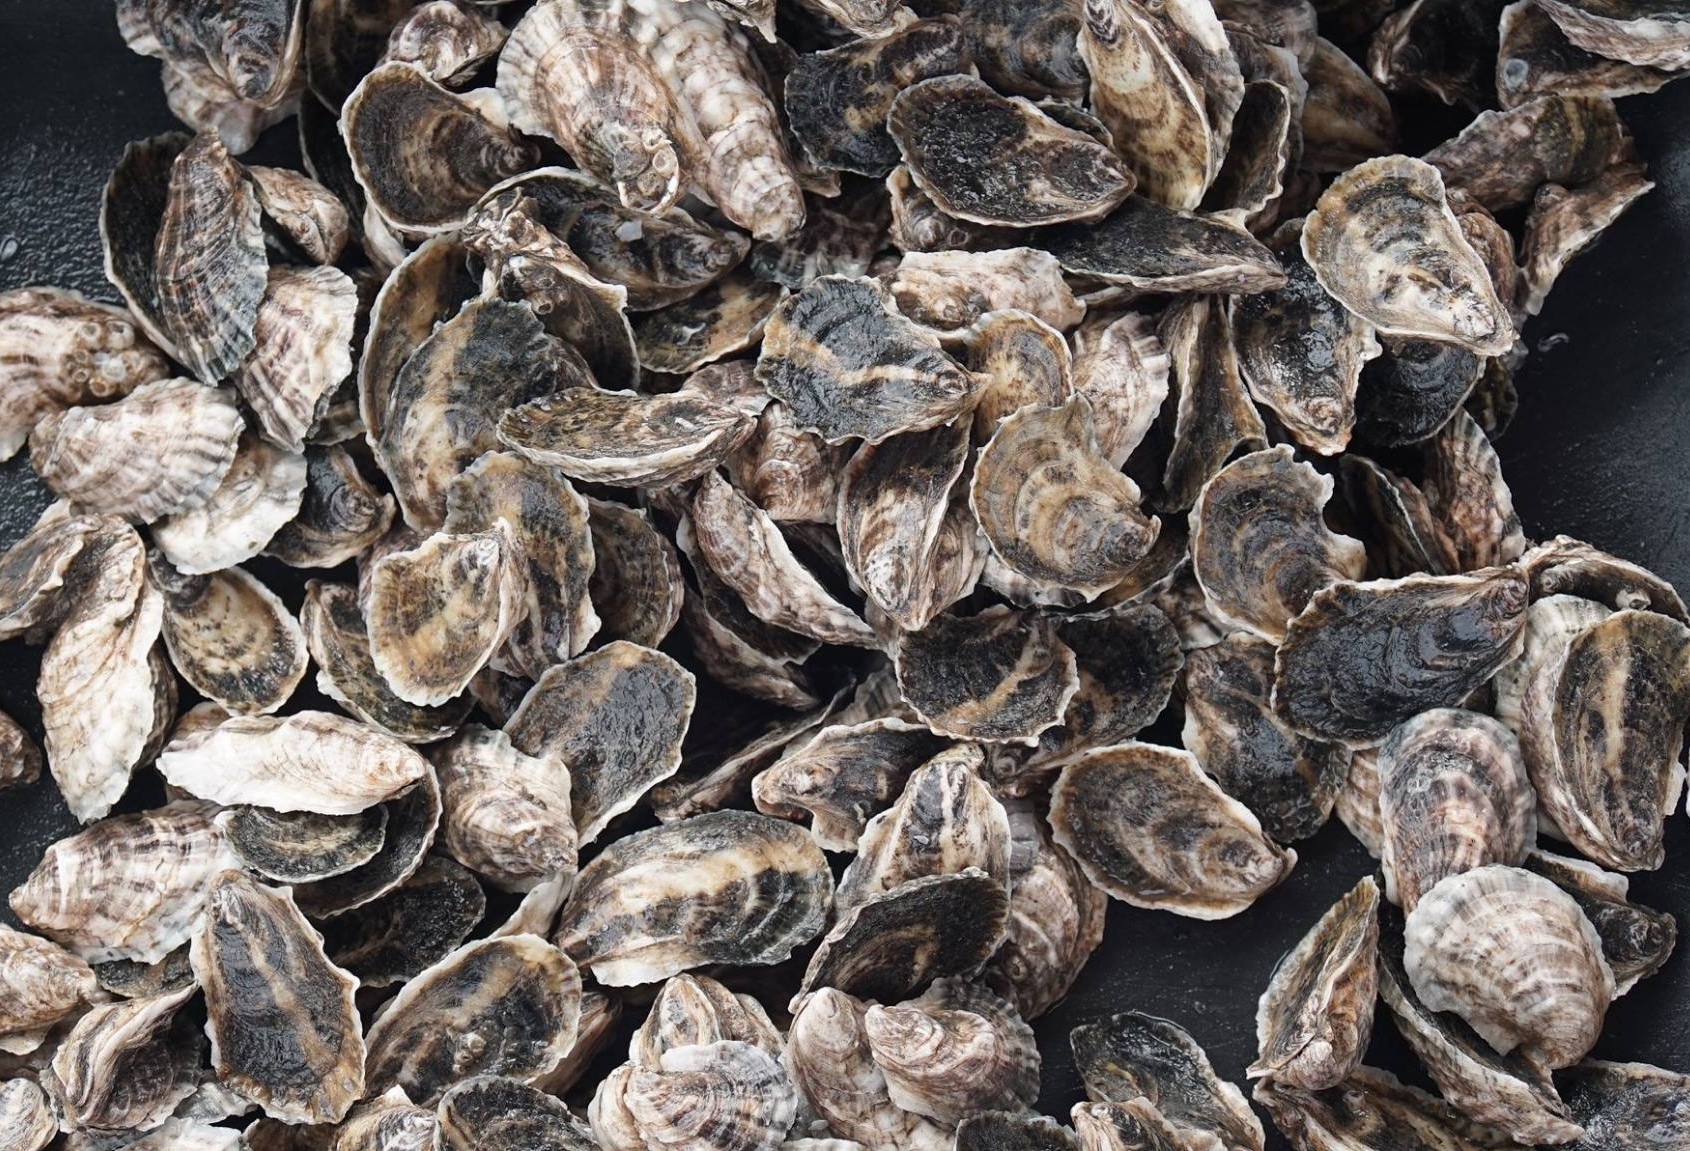 Oyster Boss oysters. Source: Burns Images.